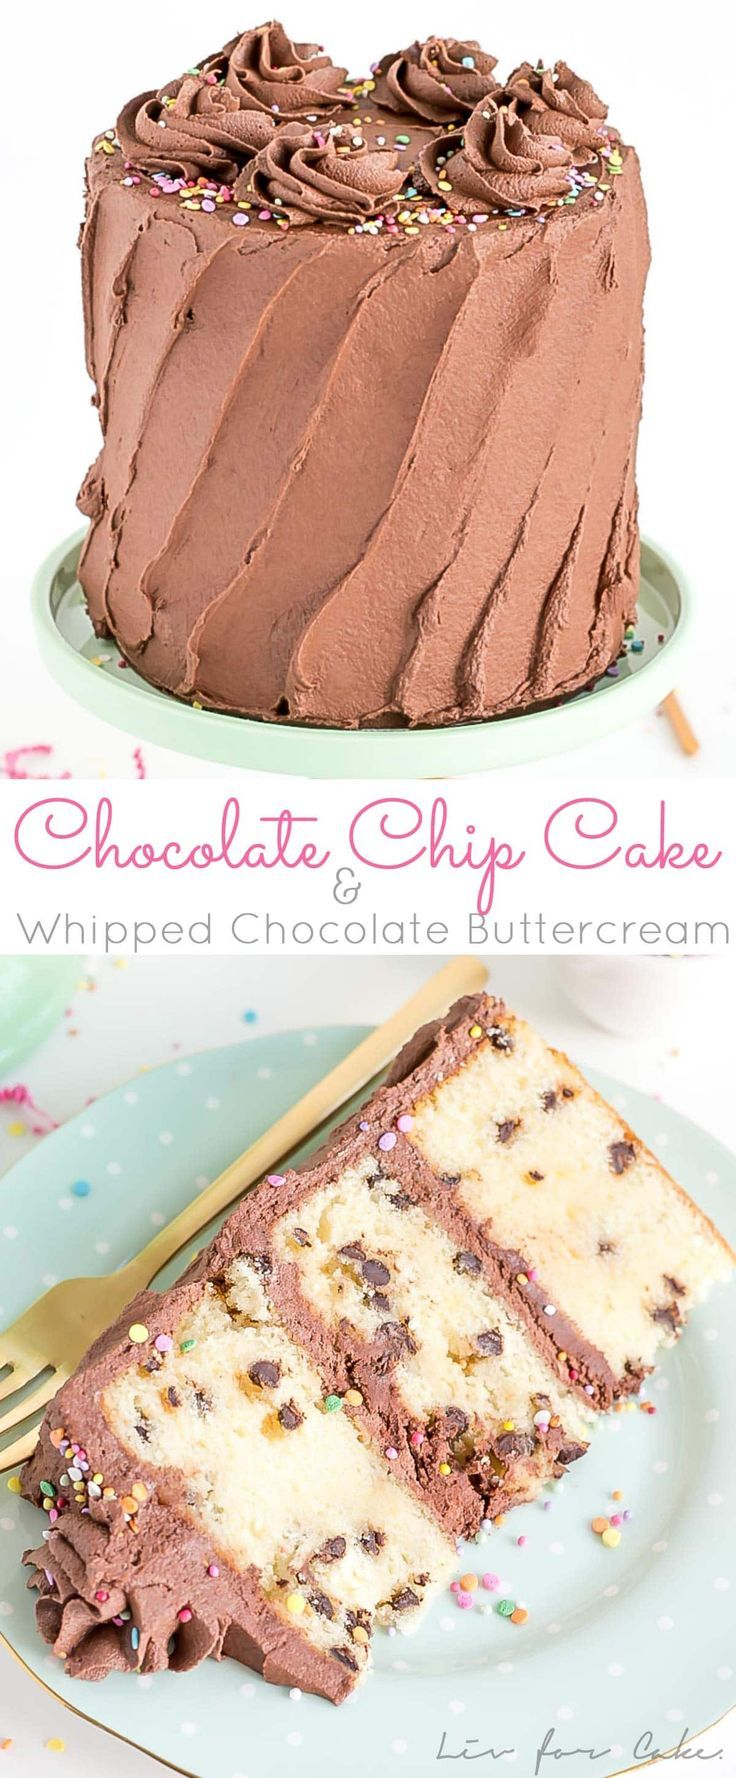 Chocolate Chip Cake With Whipped Chocolate Buttercream Recipe